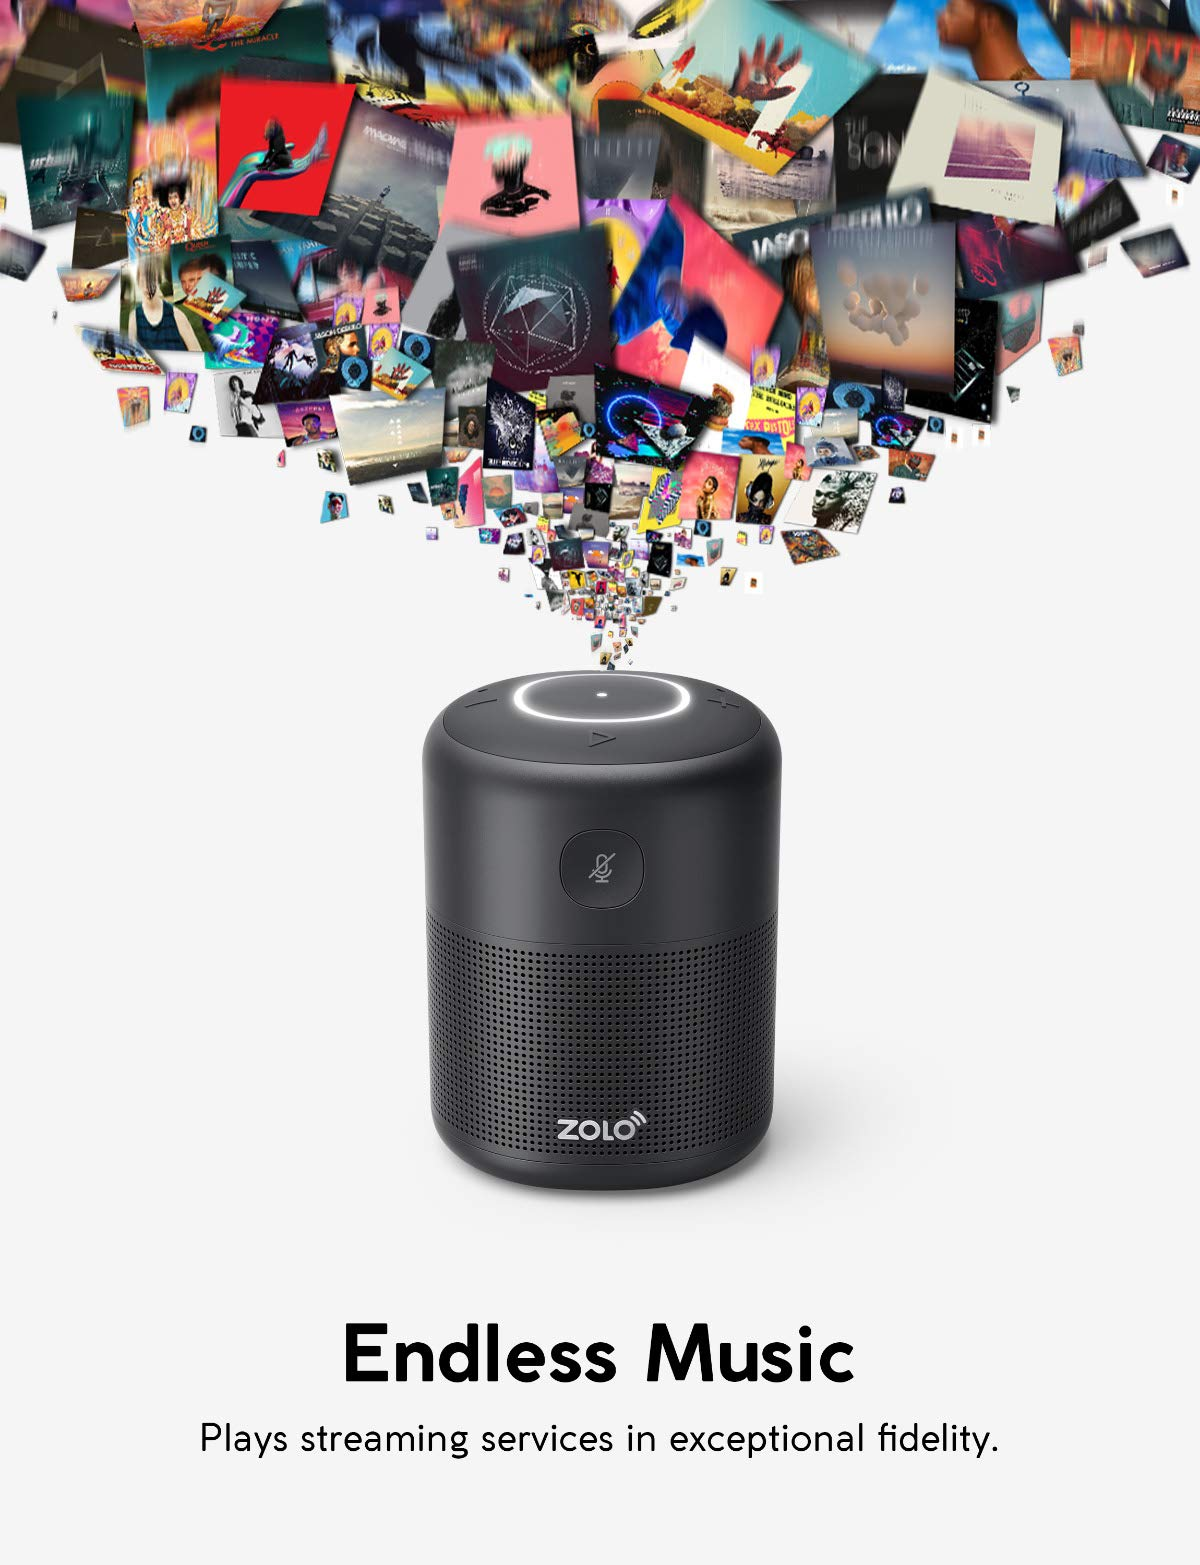 ZOLO Halo Bluetooth and Wi-Fi Smart Speaker with Alexa and Powerful Sound,  Voice Control, and Stream Amazon Music Unlimited,Spotify,TuneIn,